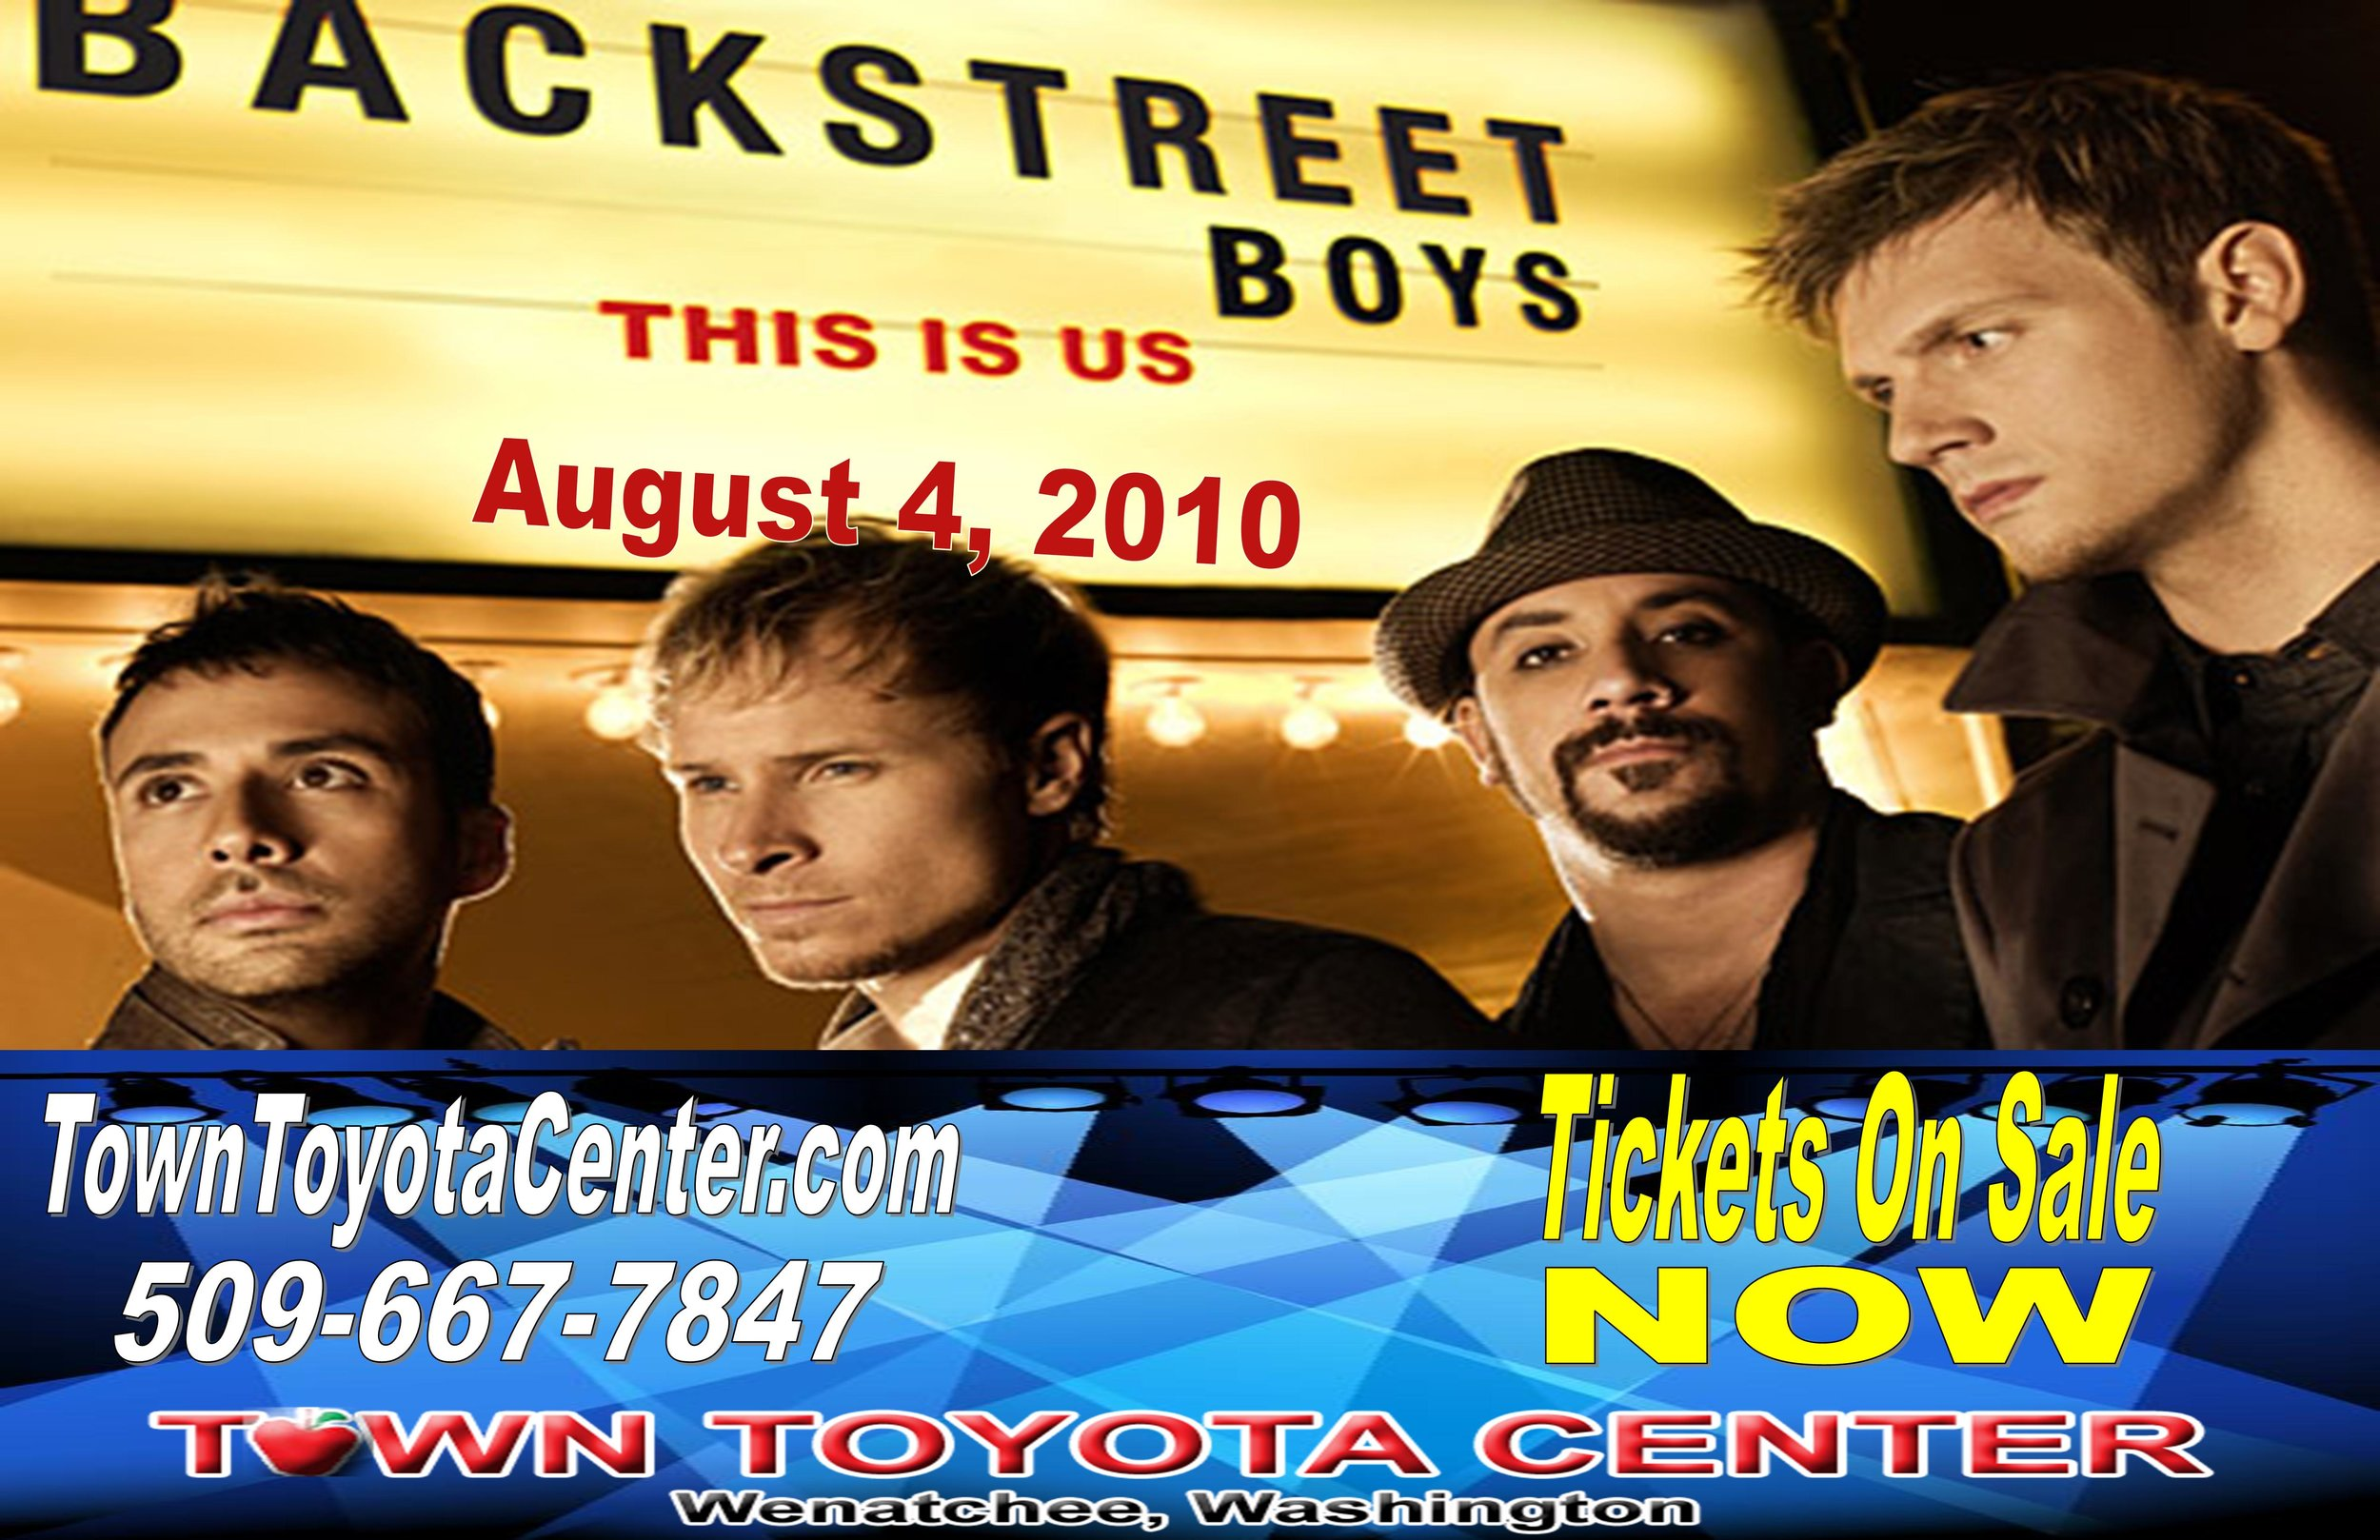 TTC TV Screen Backstreet Boys On Sale NOW.jpg